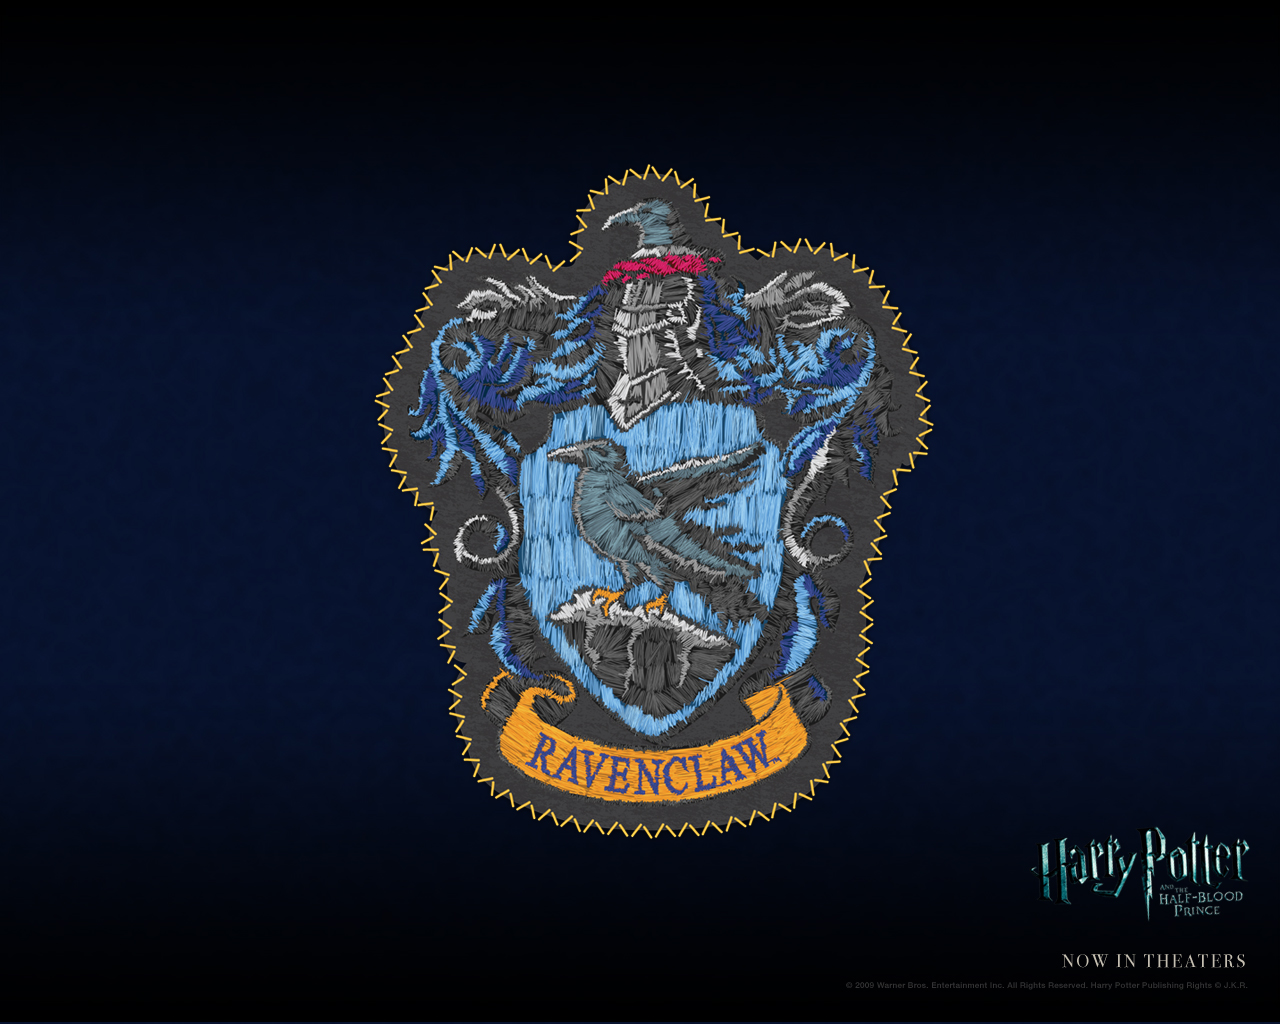 Free Download Wallpaper Ravenclaw Harrymedia Galera De Fotos De